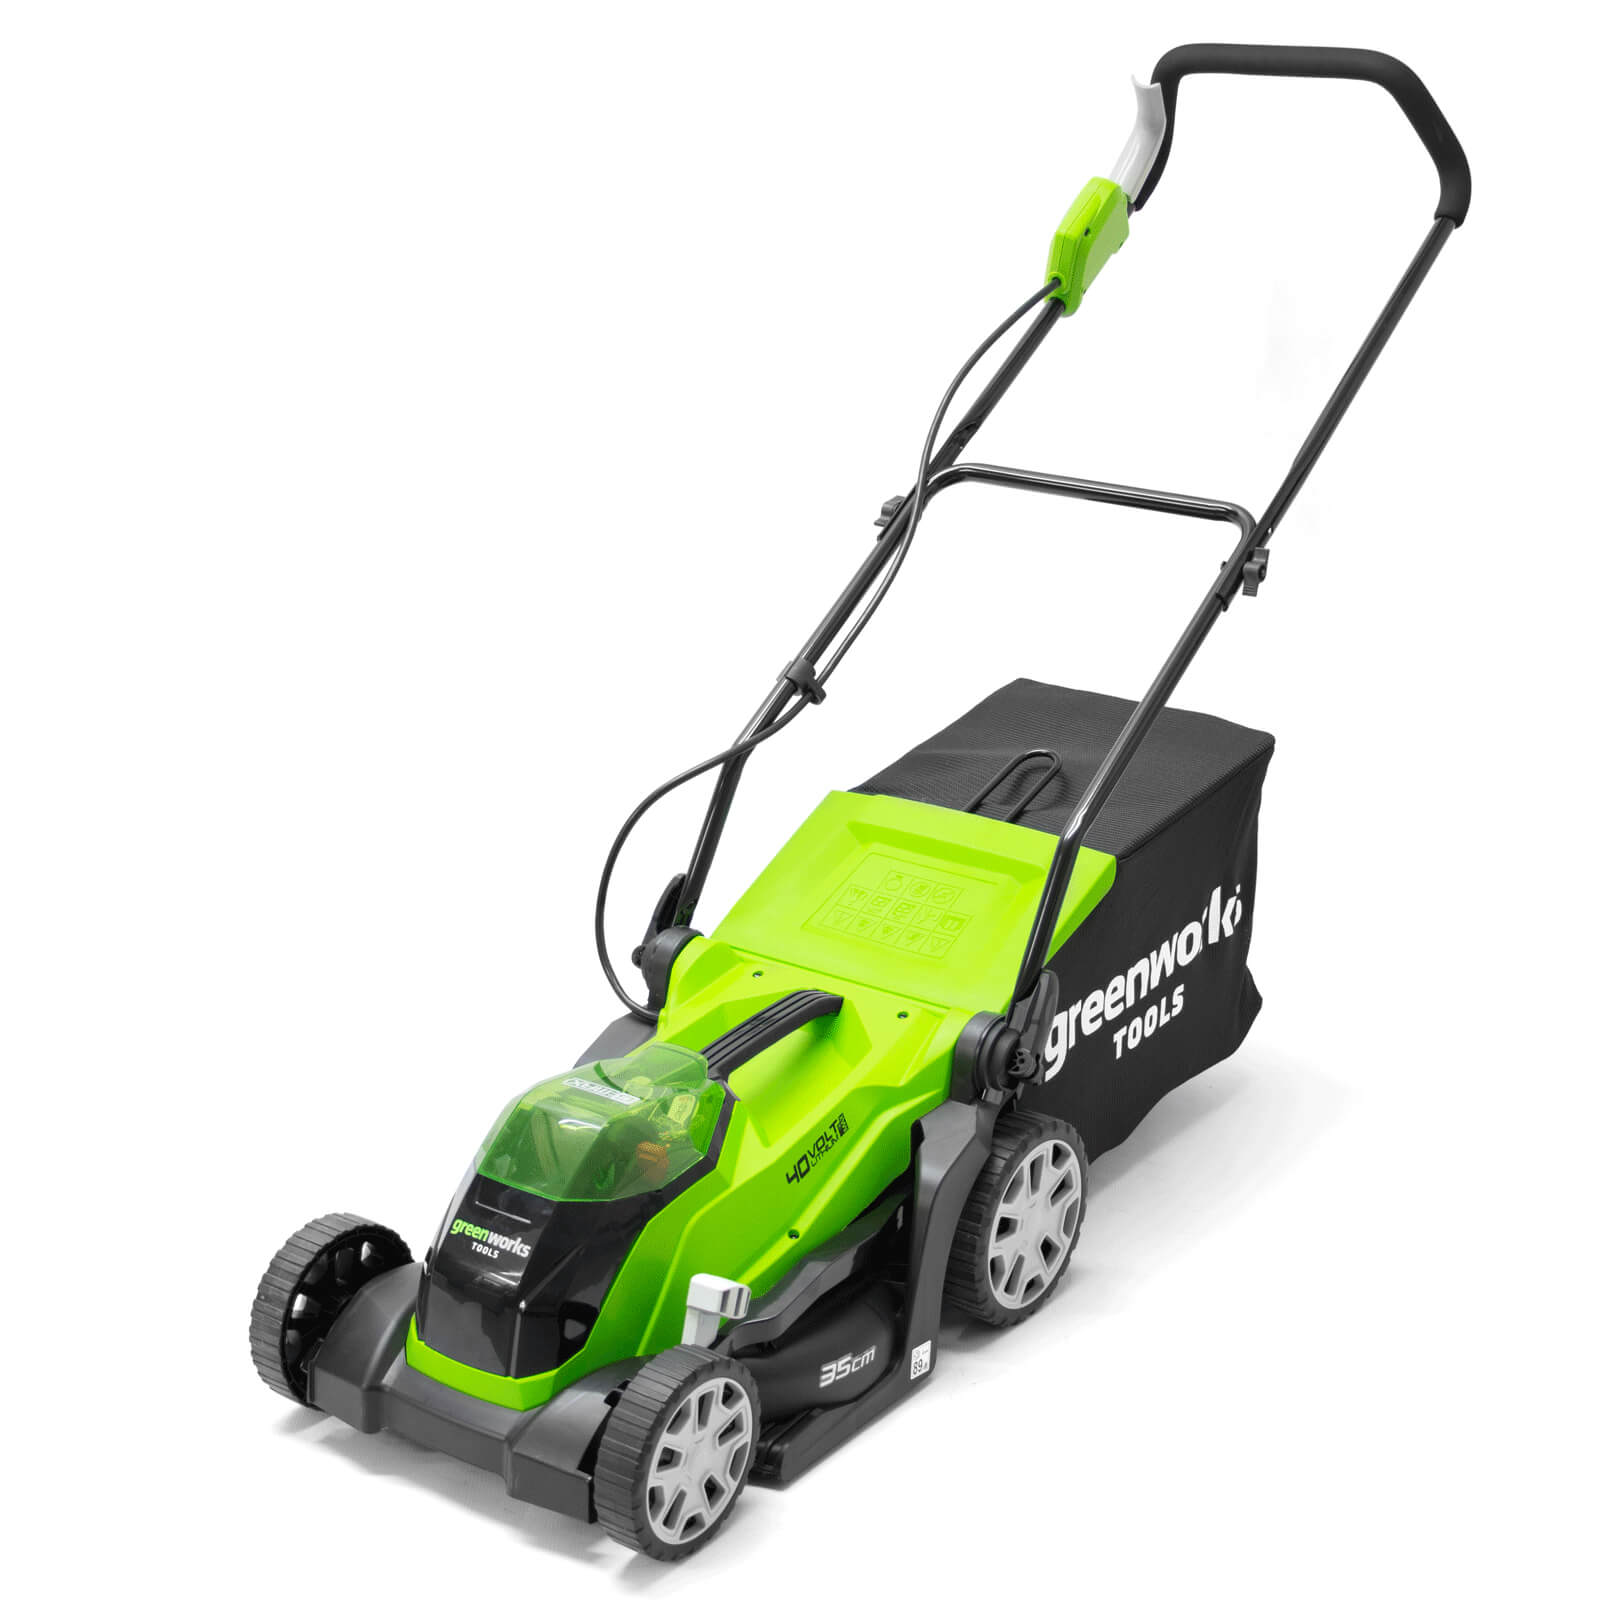 Image of Greenworks G40LM35 40v Cordless Rotary Lawnmower 350mm No Batteries No Charger